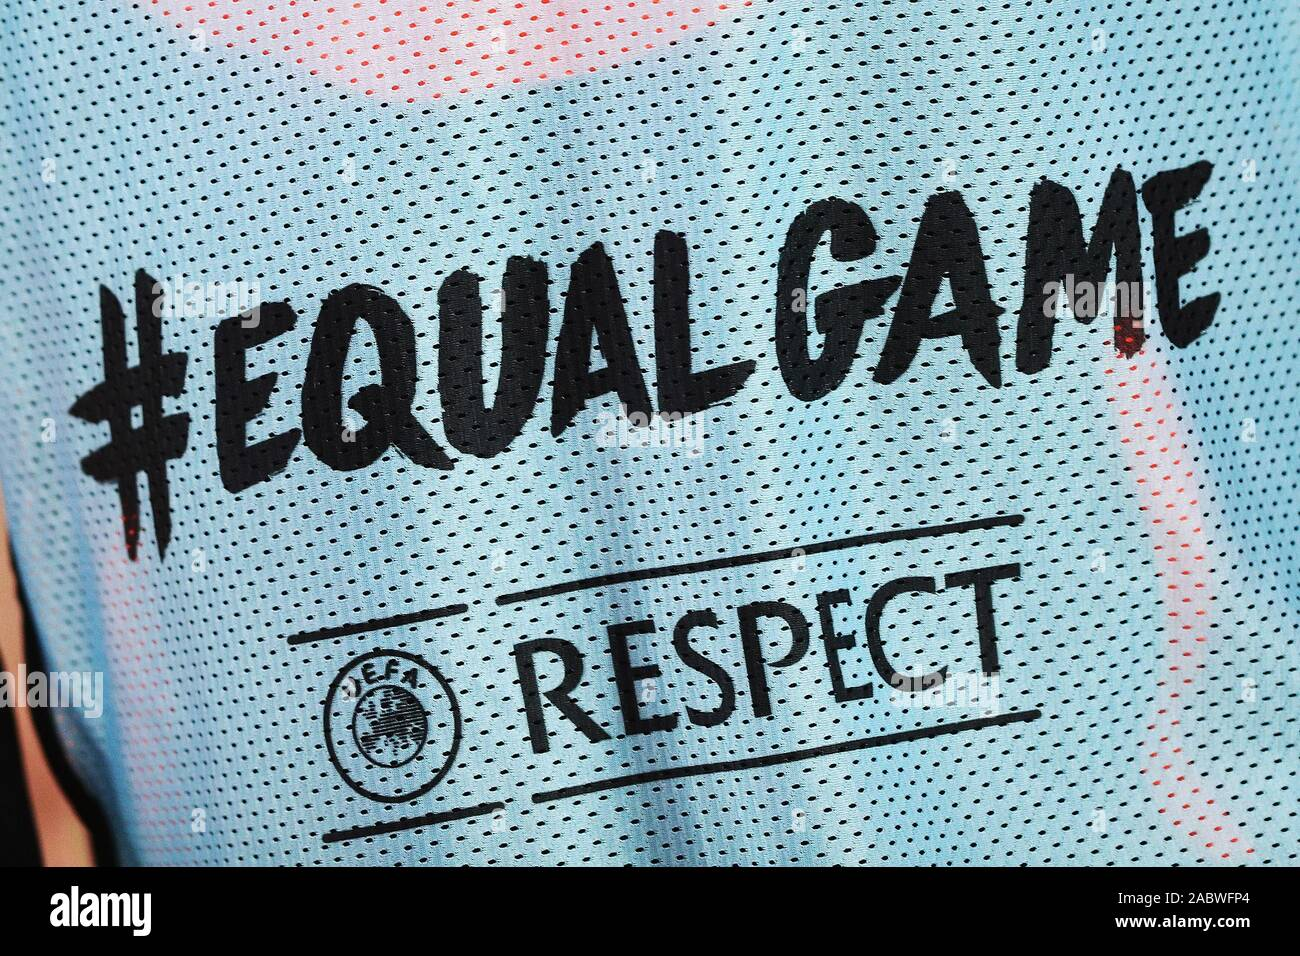 Equal Game and Respect campaign logos on a Cluj bib during the UEFA Europa League, Group E football match between SS Lazio and CFR Cluj on November 28, 2019 at Stadio Olimpico in Rome, Italy - Photo Federico Proietti/ESPA-Images Stock Photo